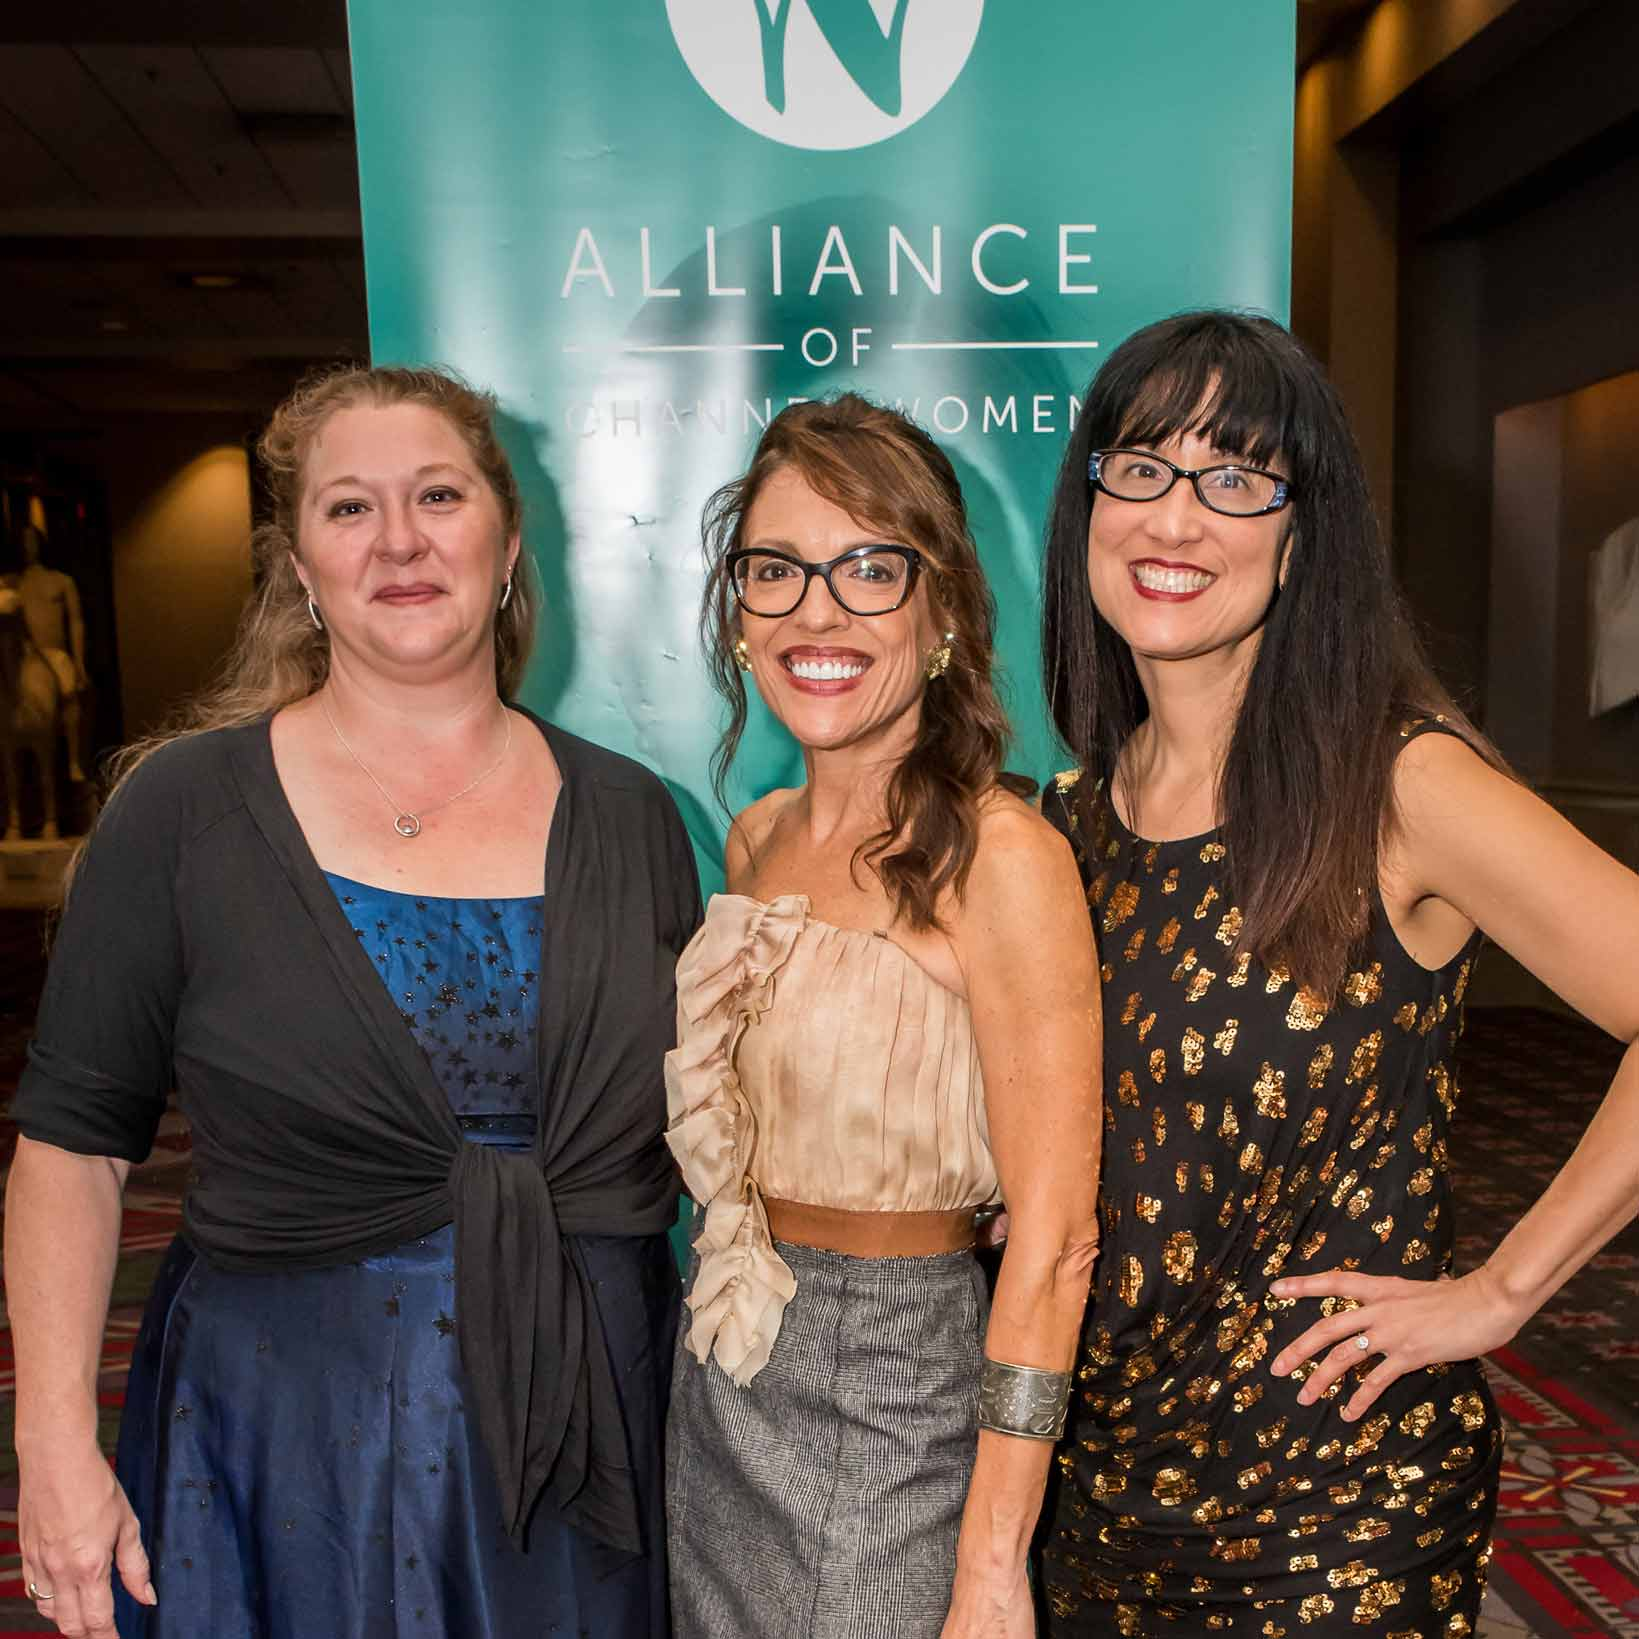 About the Alliance of Channel Women